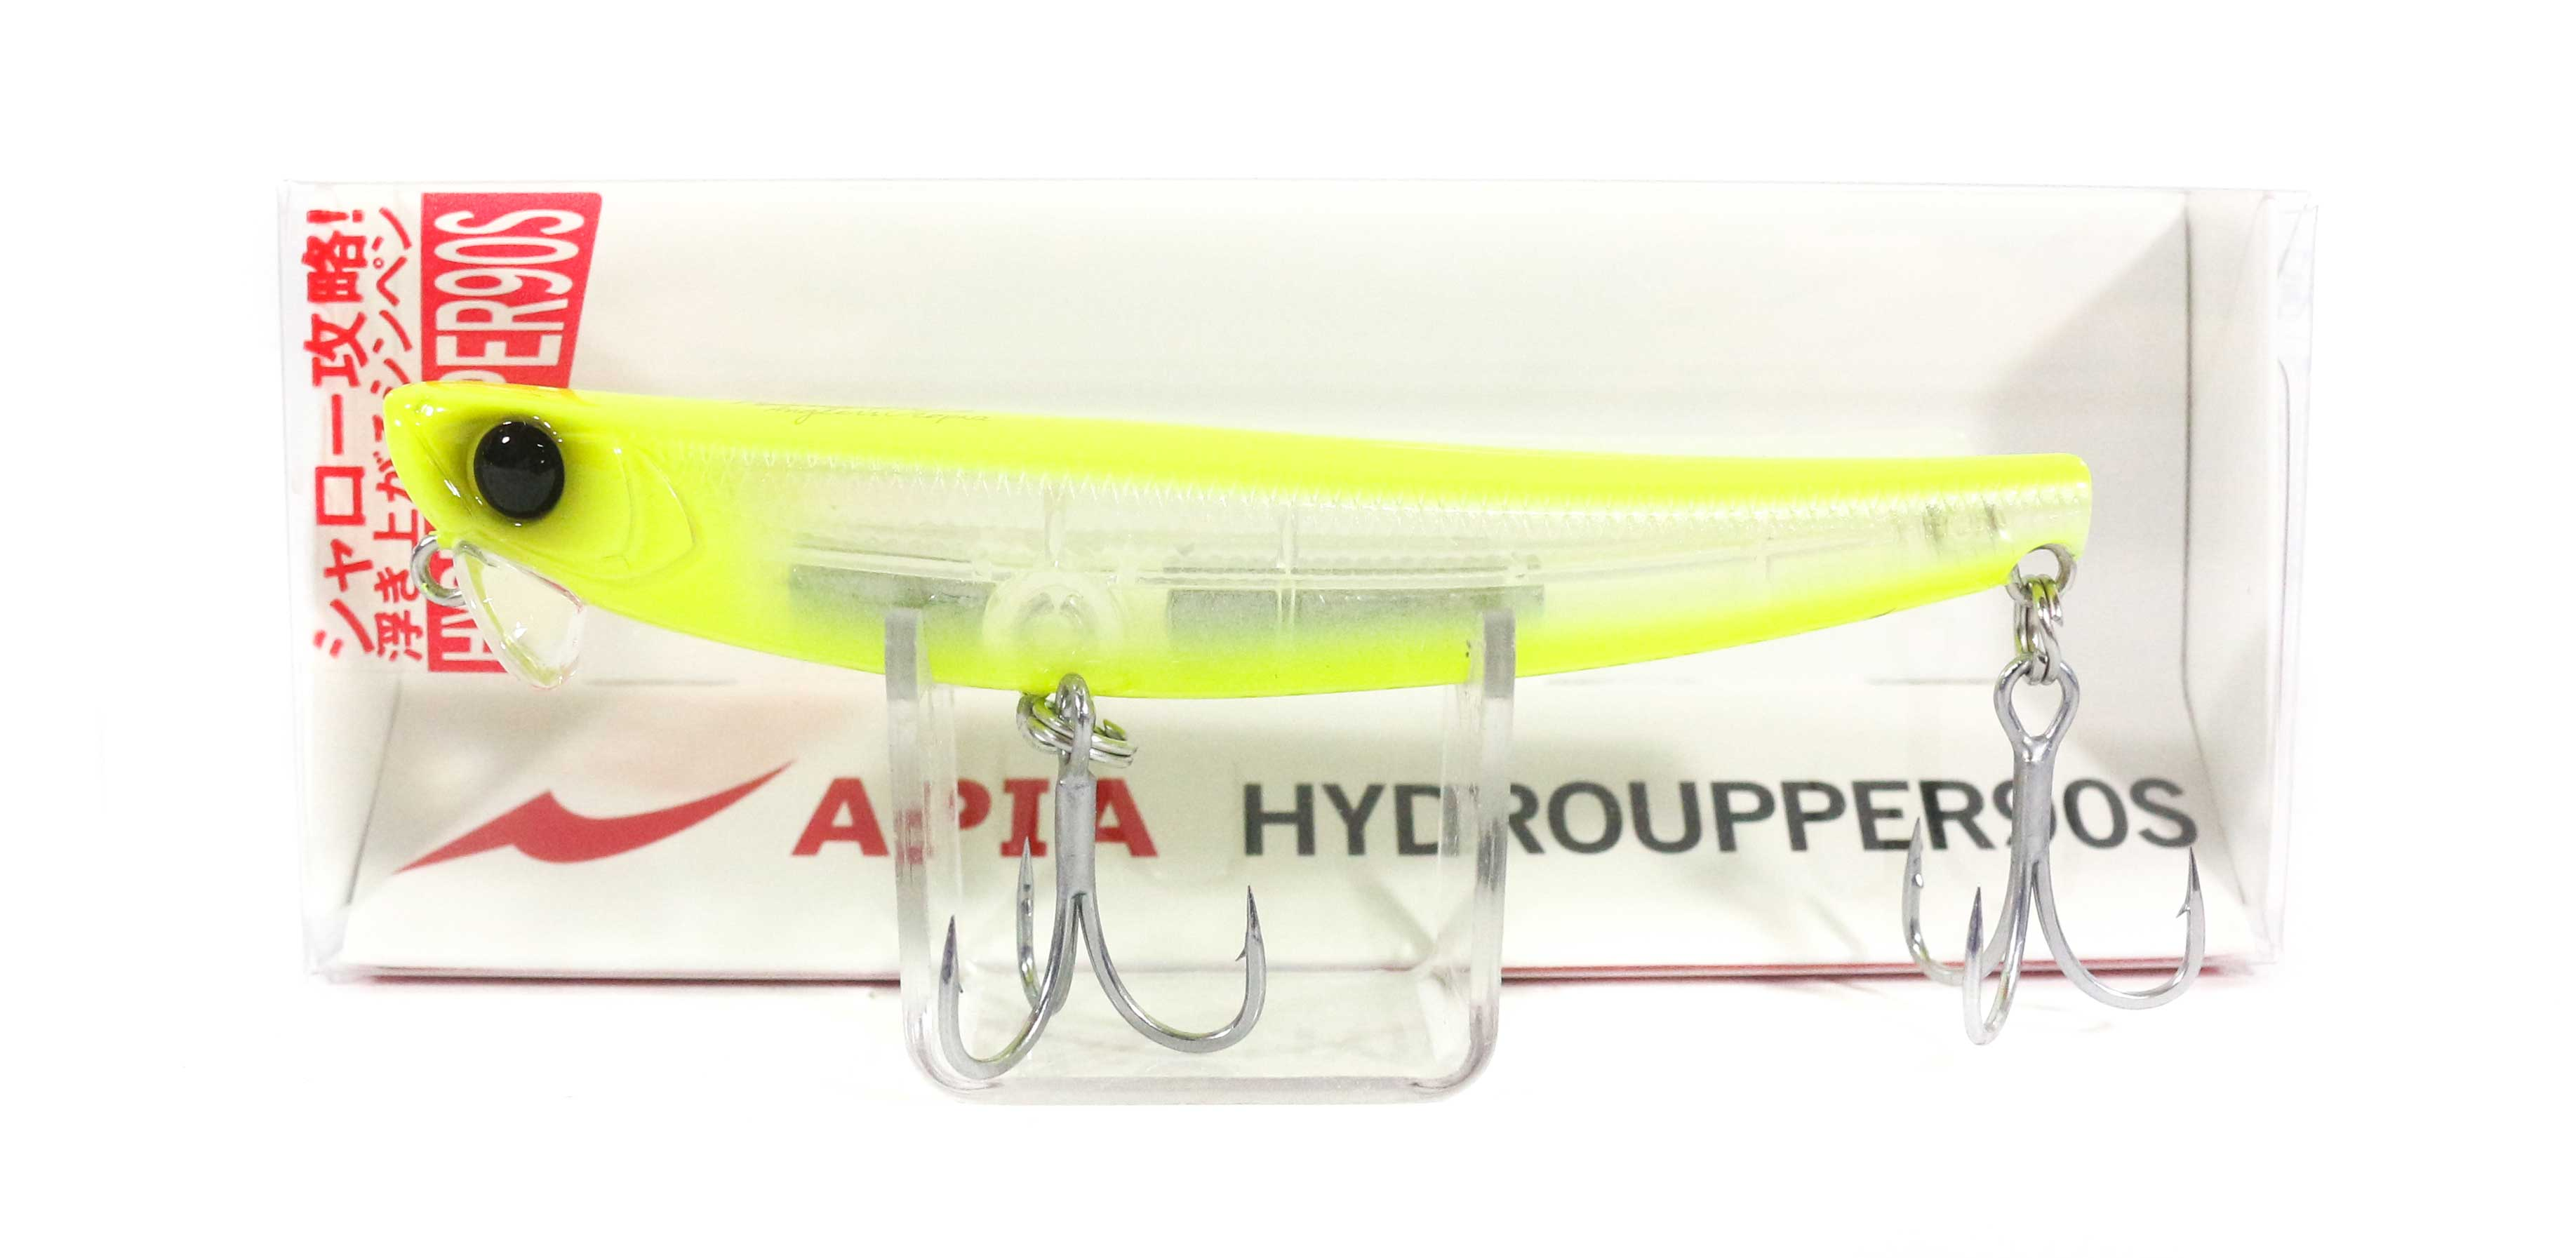 Apia Hydroupper 90S Sinking Lure 03 (3554)